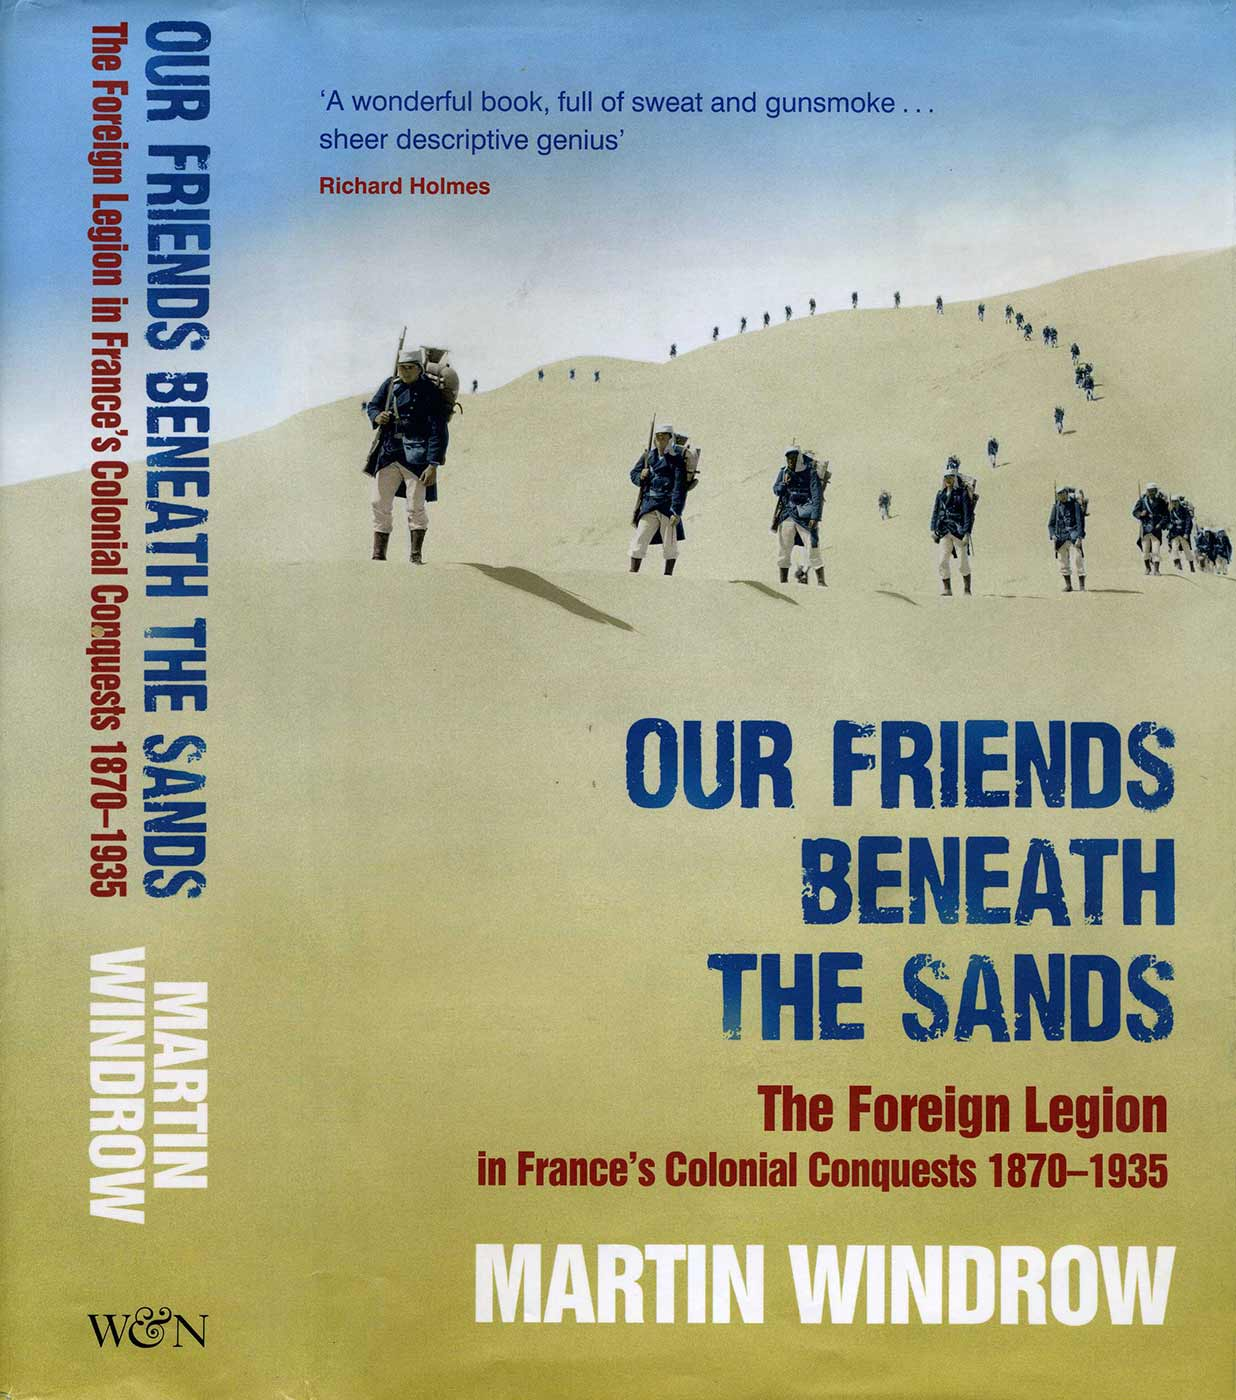 Book cover for 'Our Friends Beneath The Sands / The Foreign Legion in France's Colonial Conquest's 1870 - 1935' by Martin Windrow. The image features soldiers walking across sand dunes.